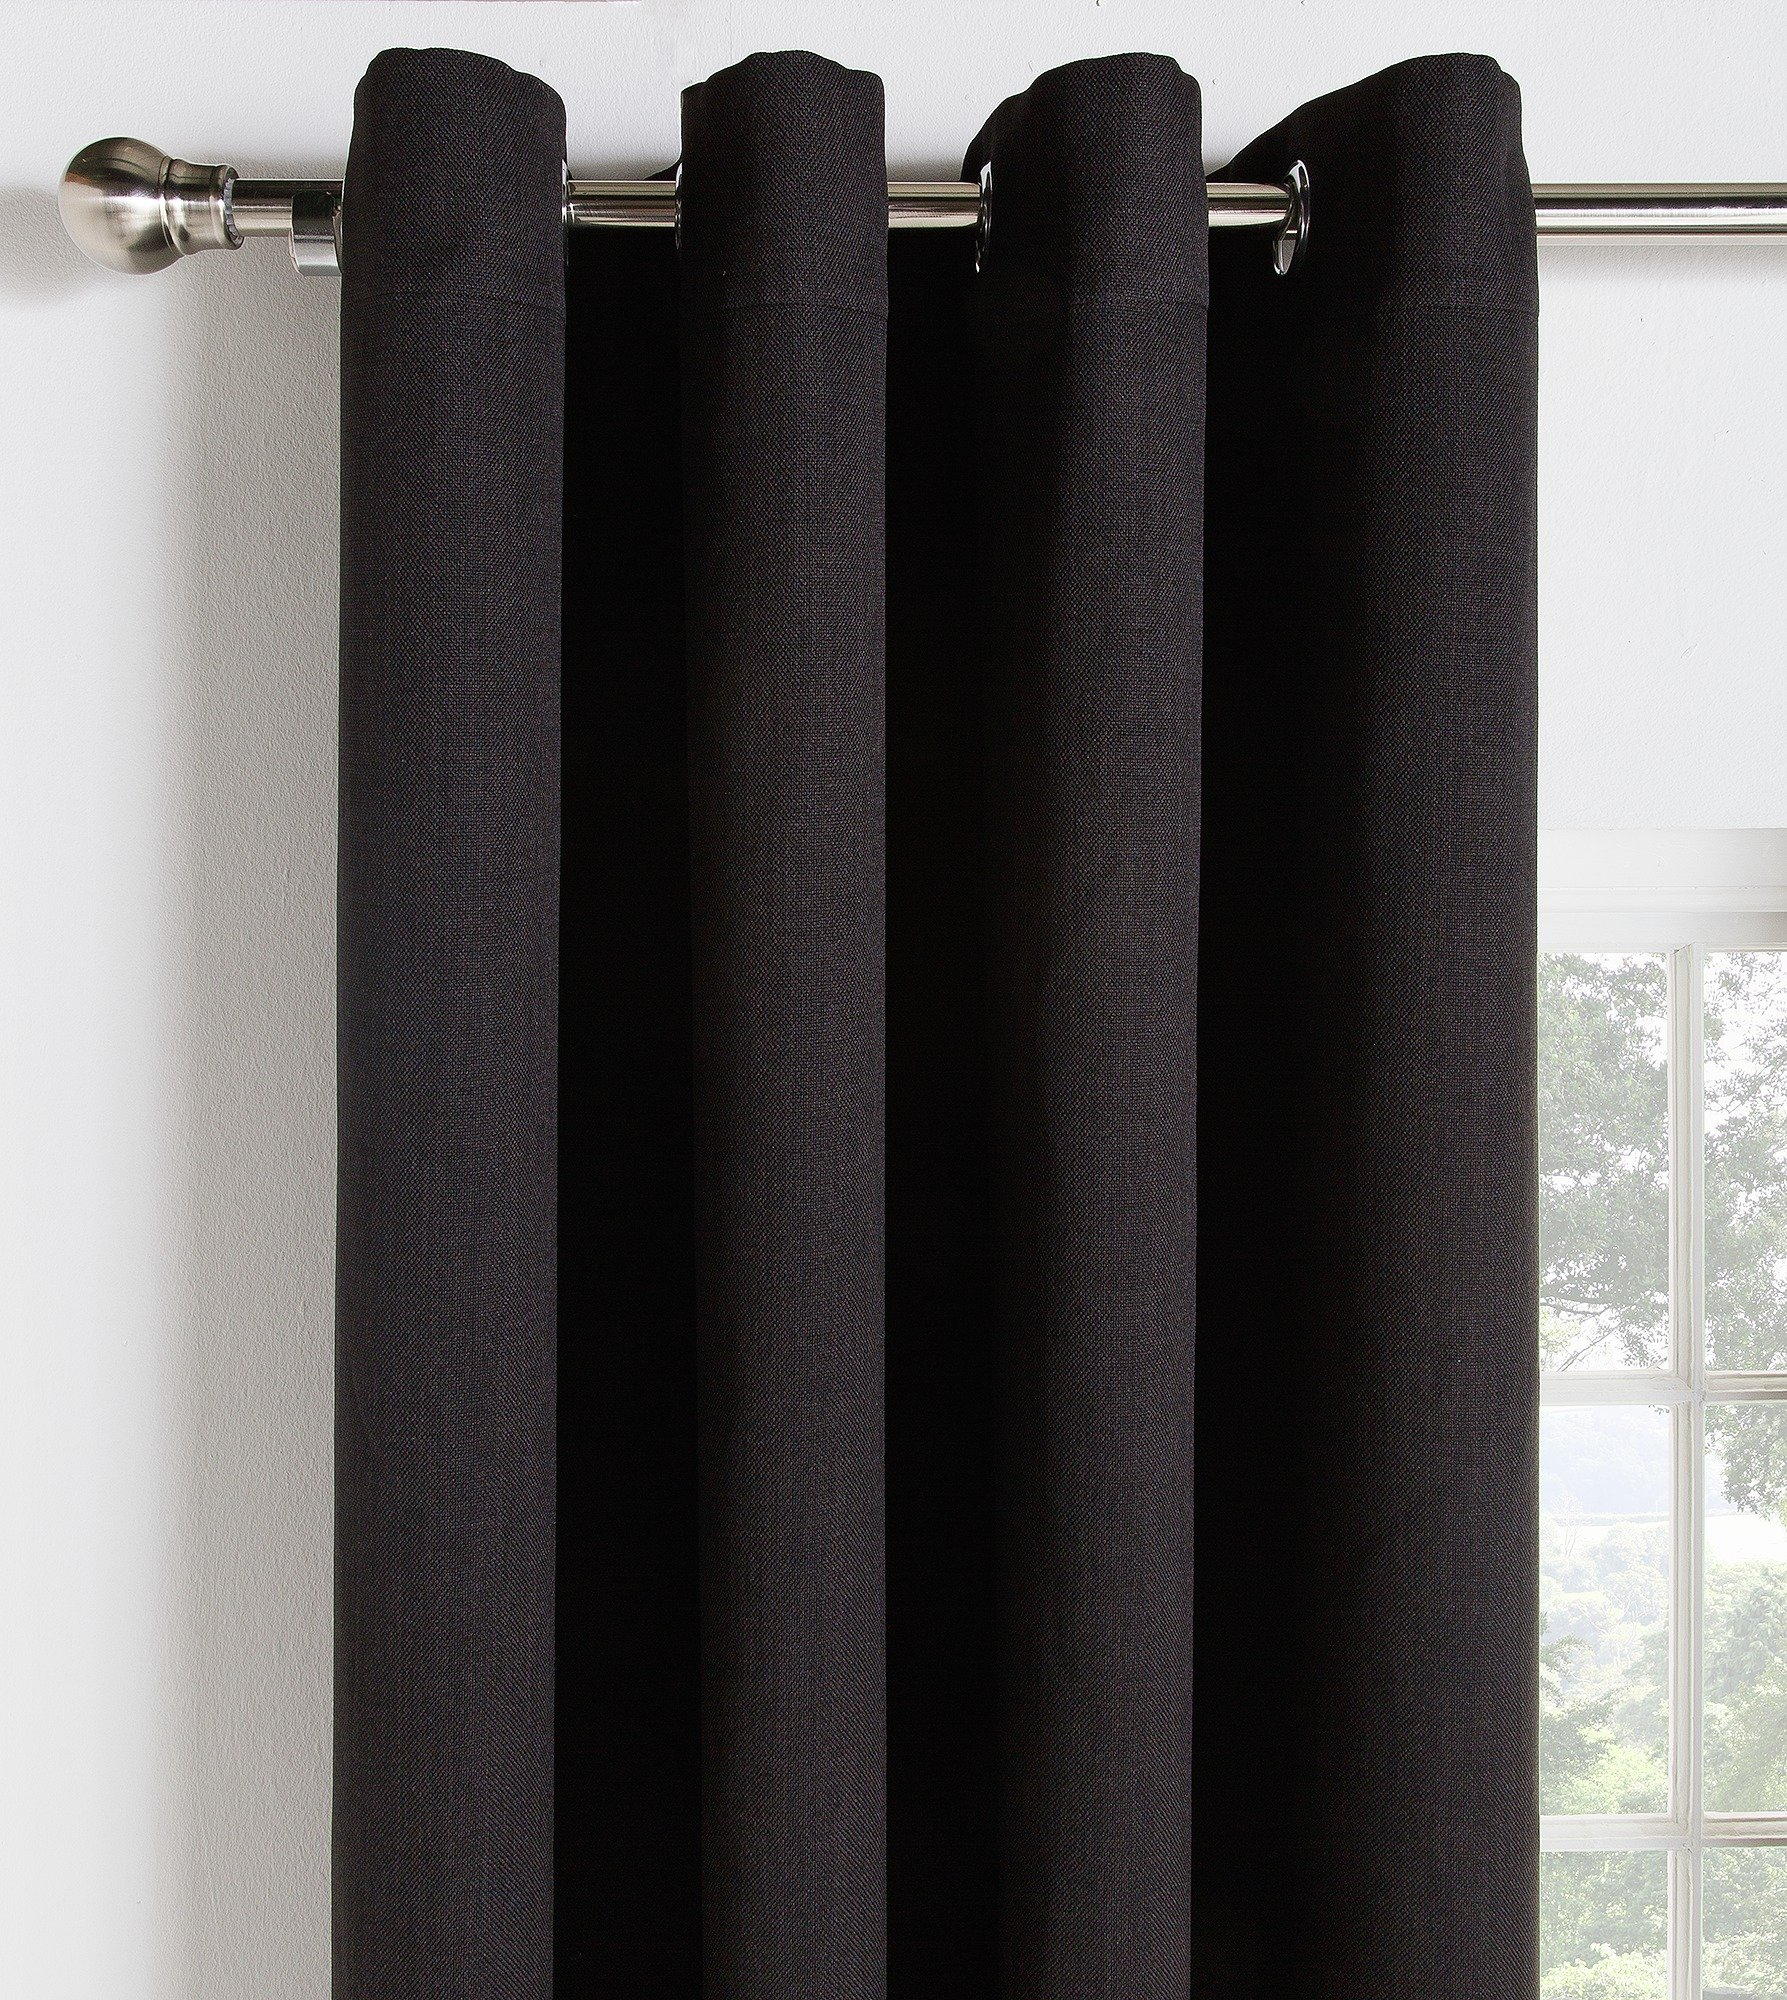 Collection Linen Look Blackout Curtains - 168x183cm - Black